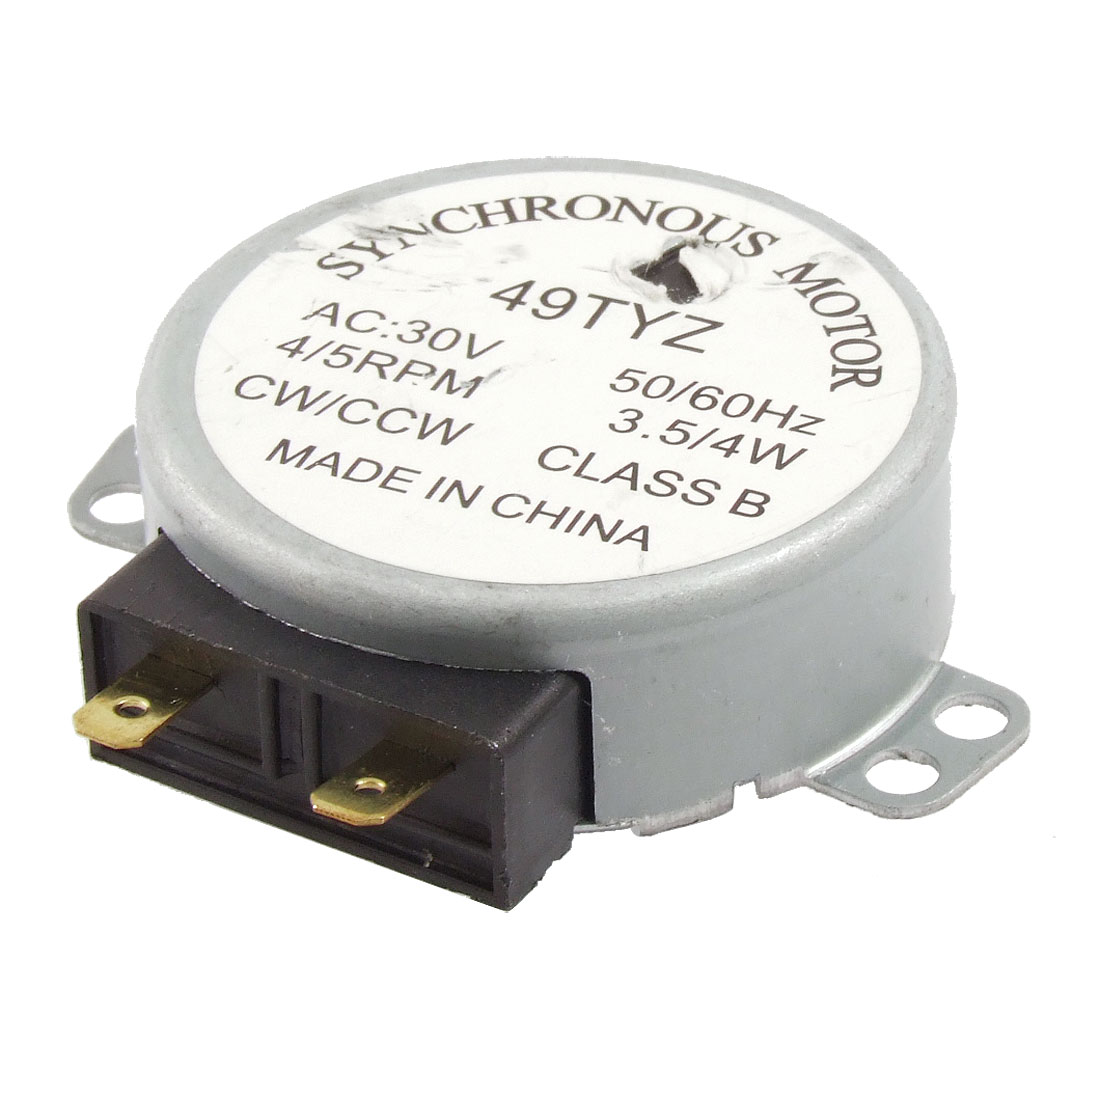 AC 30V 3.5/4W 4/5RPM Synchronous Motor for Microwave Oven